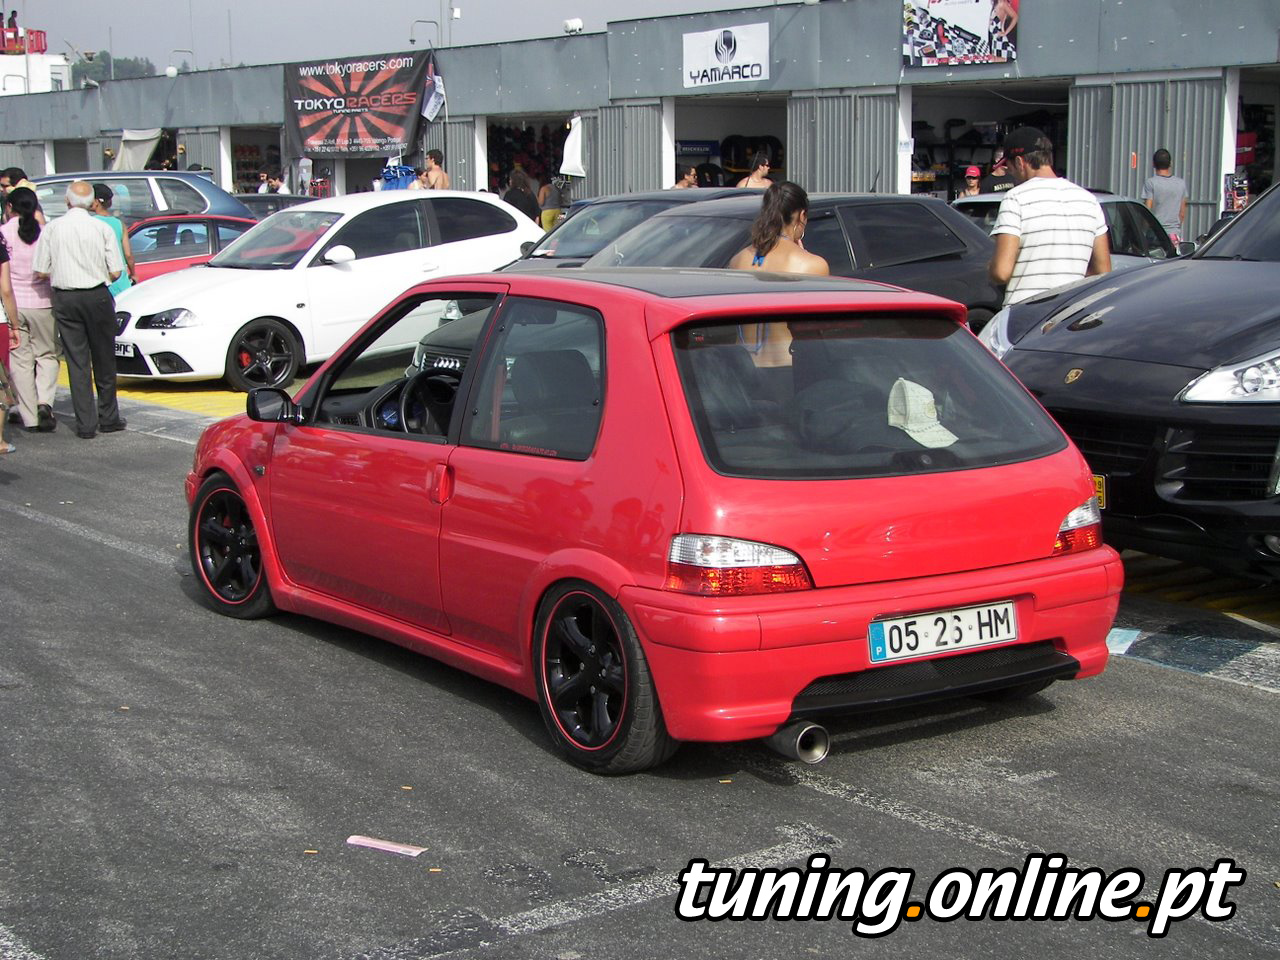 fotografia de tuning braga peugeot 106 tuning online. Black Bedroom Furniture Sets. Home Design Ideas